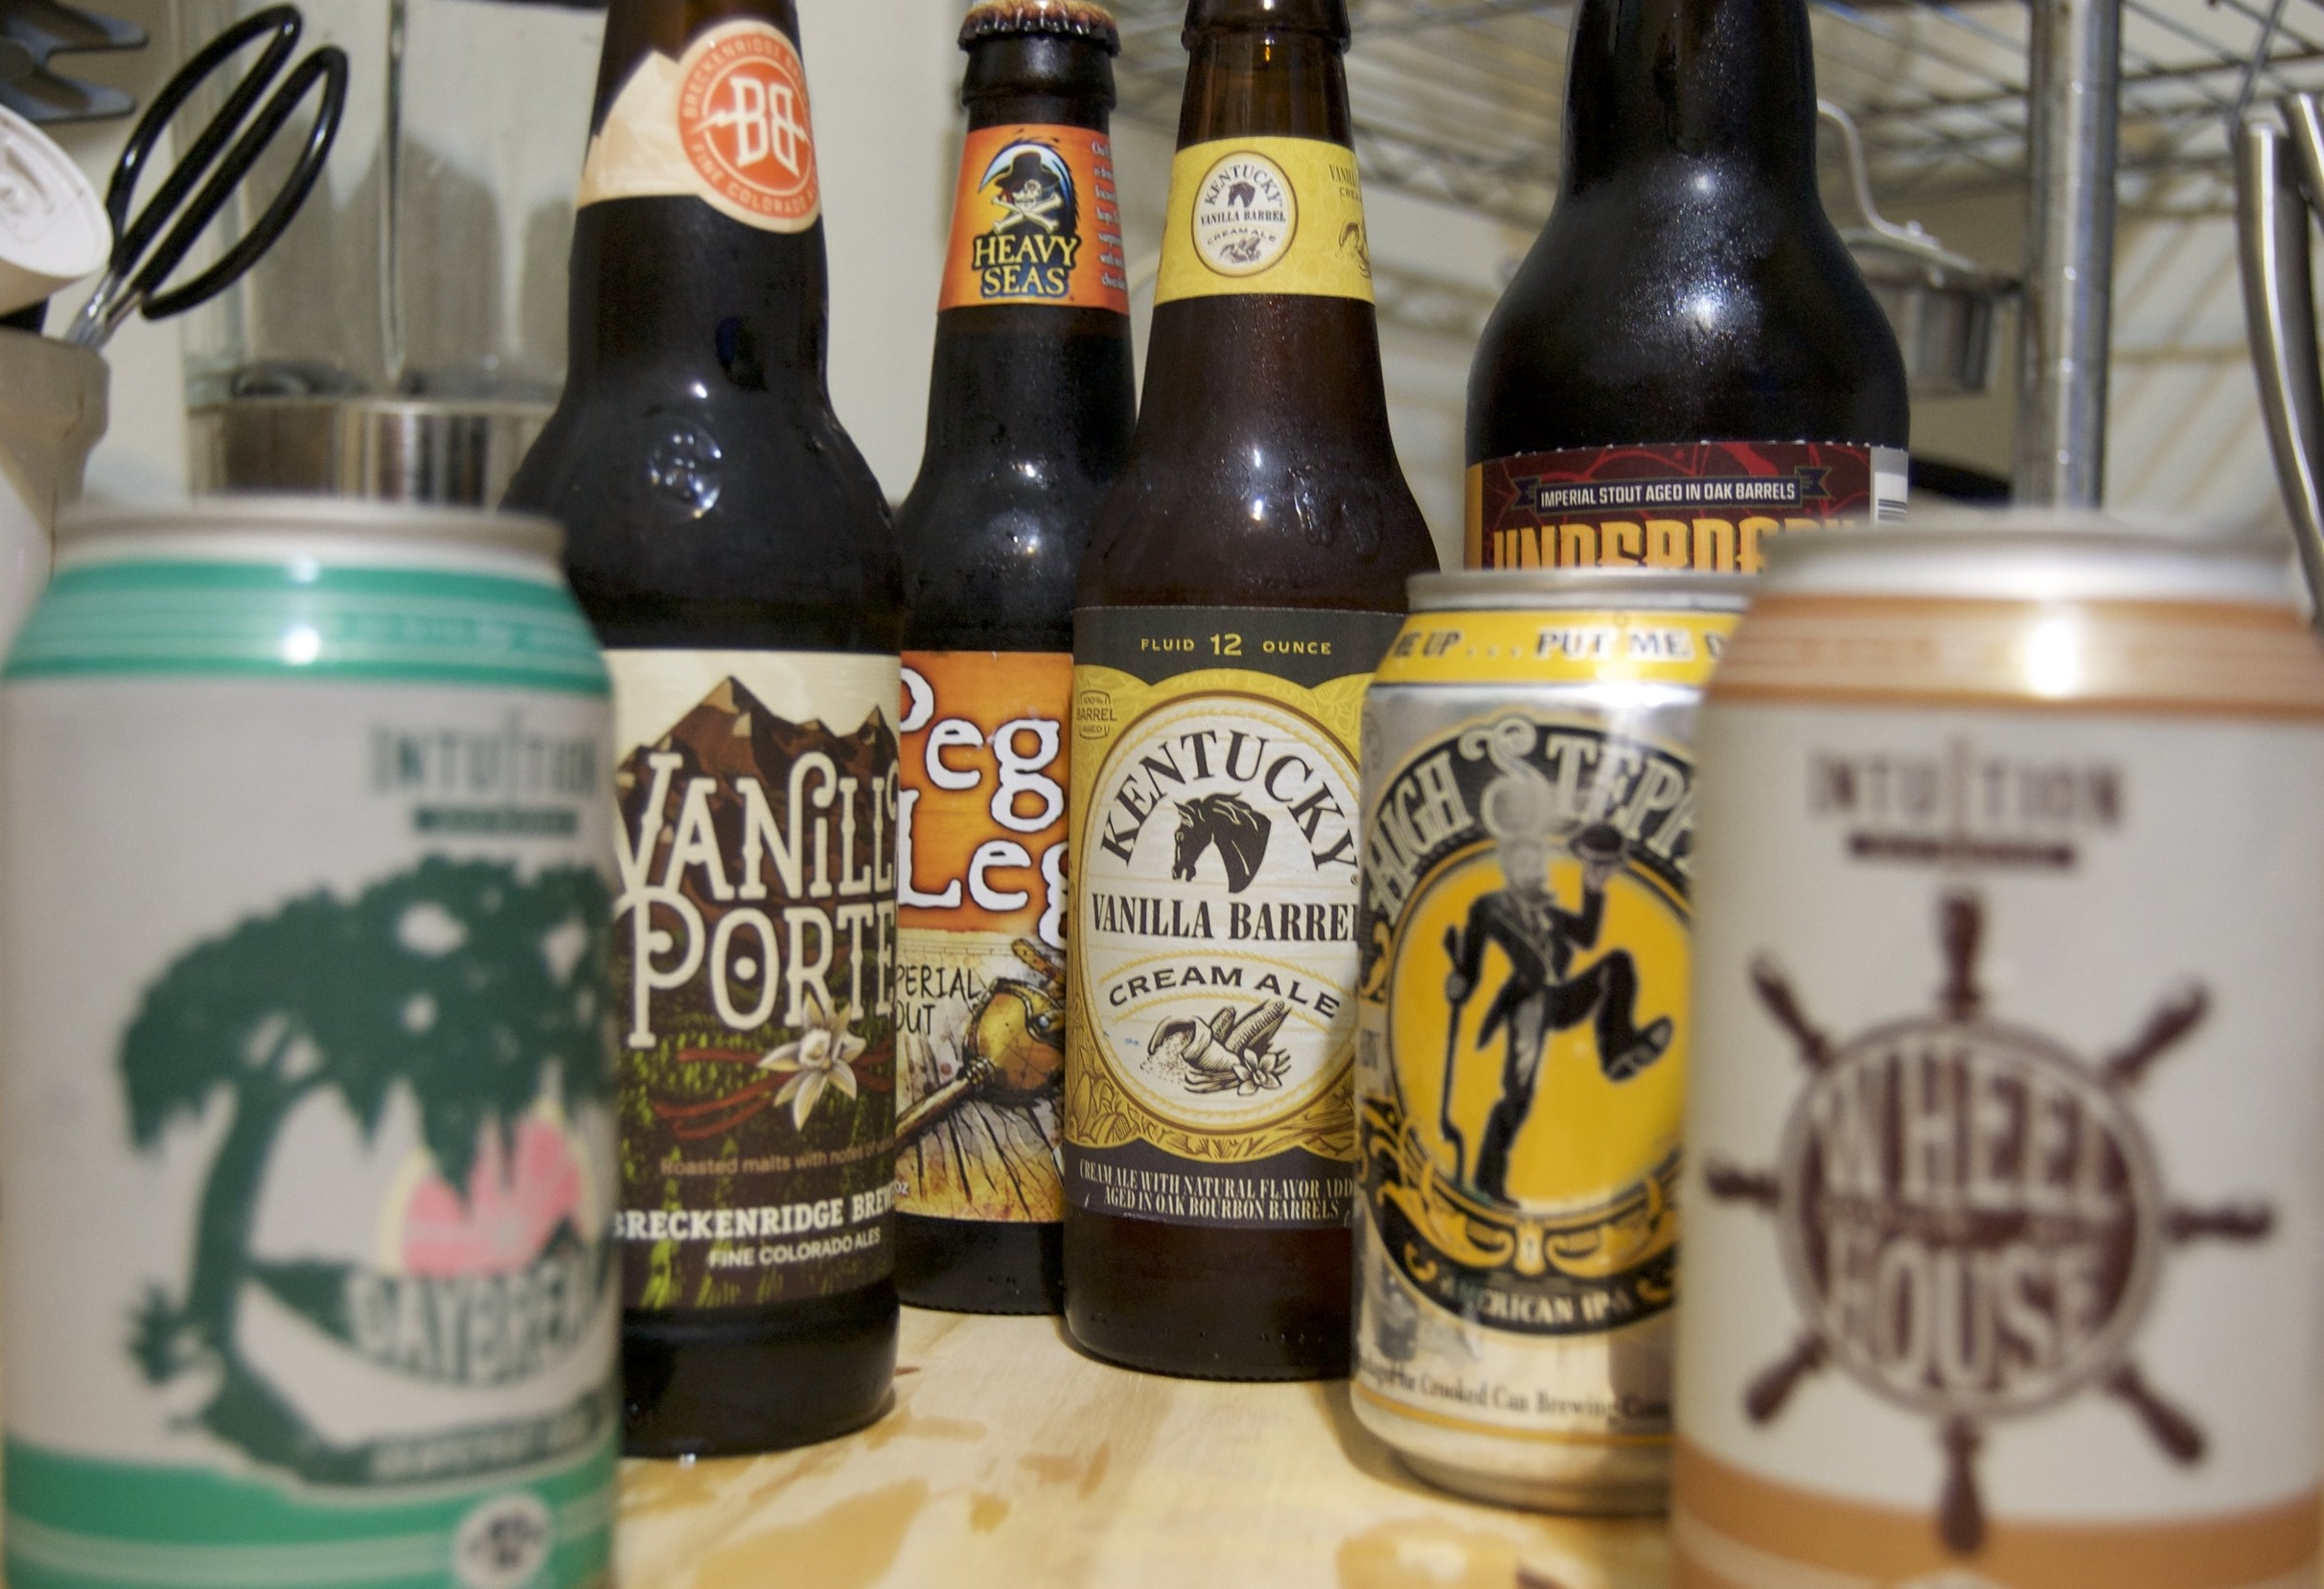 Here's a few I've picked up from around town. - Here's a few I've picked up from around town. In no particular order, sorry some are out of focus.-The Vanilla Porter from Breckenridge Brewery is always excellent. Smooth, and dare I say silky. I dare. I dare. -The Kentucky Vanilla Barrel Cream Ale is like drinking cream soda. Definitely worth a try, and another, and another. Put it on some vanilla ice cream, and watch a movie.-Towards the front we have Wheelhouse Brown Ale, a seasonal offering from Intuition Ale Works. A very drinkable beer. Very smooth. I really hope they decide to make it a regular offering.-The Intuition Daybreak Grapefruit IPA was surprisingly good. I'm not usually an IPA guy, but I enjoyed this tart brew. I'd like to drink it at a picnic, or outside event.-High Stepper American IPA was good as well. Tart and bitter, but pleasing. I think I'd have it with something low key like fish or noodles. Everything that Crooked Can Brewing has made has been good. -In the back is Peg Leg. I haven't tried that one yet.-In the way back is Underdark, a limited yearly release from Intuition Ale Works. I shared this with some friends, and it was excellent. Toffee, chocolate, deep and rich. These are the beers I live for. I want to drink it while playing Cards Against Humanity.Note: I didn't drink all of these in one day, or even two days. Drink Responsibly!